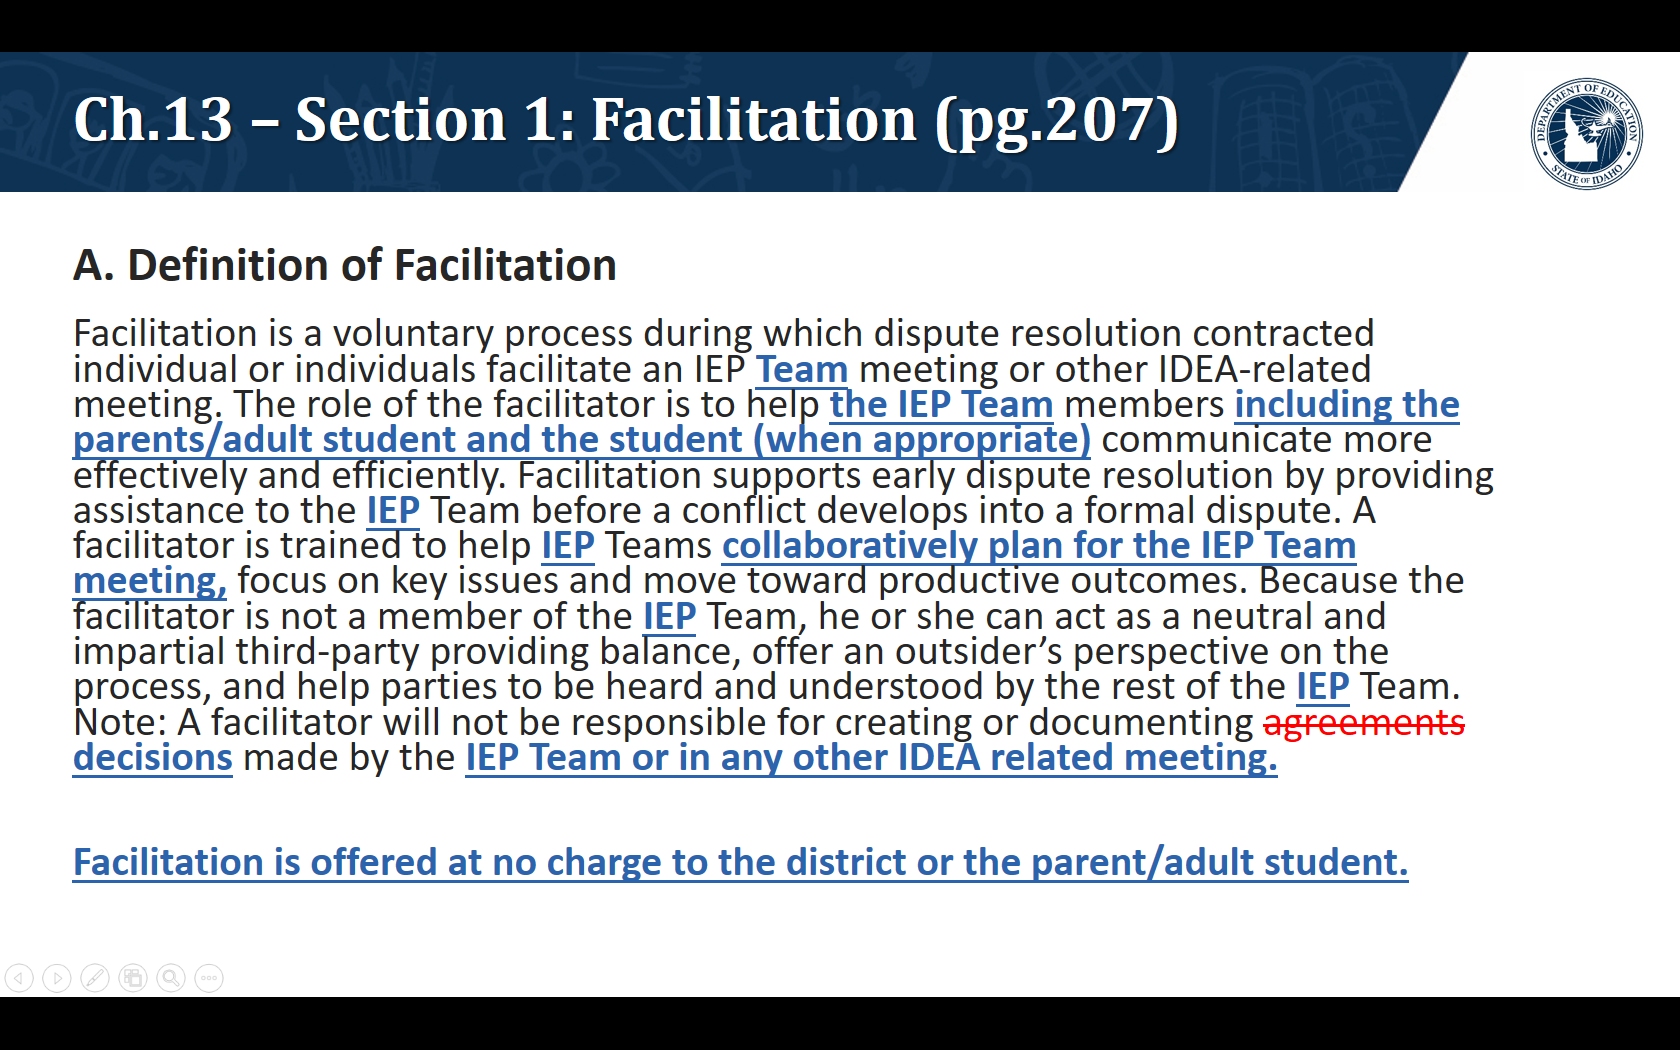 A. Definition of Facilitation. Facilitation is a voluntary process during which dispute resolution contracted individual or individuals facilitate an IEP Team meeting or other IDEA-related meeting. The role of the facilitator is to help the IEP Team members including the parents/adult student and the student (when appropriate) communicate more effectively and efficiently. Facilitation supports early dispute resolution by providing assistance to the IEP Team before a conflict develops into a formal dispute. A facilitator is trained to help IEP Teams collaboratively plan for the IEP Team meeting, focus on key issues and move toward productive outcomes. Because the facilitator is not a member of the IEP Team, he or she can act as a neutral and impartial third-party providing balance, offer an outsider's perspective on the process, and help parties to be heard and understood by the rest of the IEP Team. Note: A facilitator will not be responsible for creating or documenting decisions made by the IEP Team or in any other IDEA related meeting.  Facilitation is offered at no charge to the district or the parent/adult student.